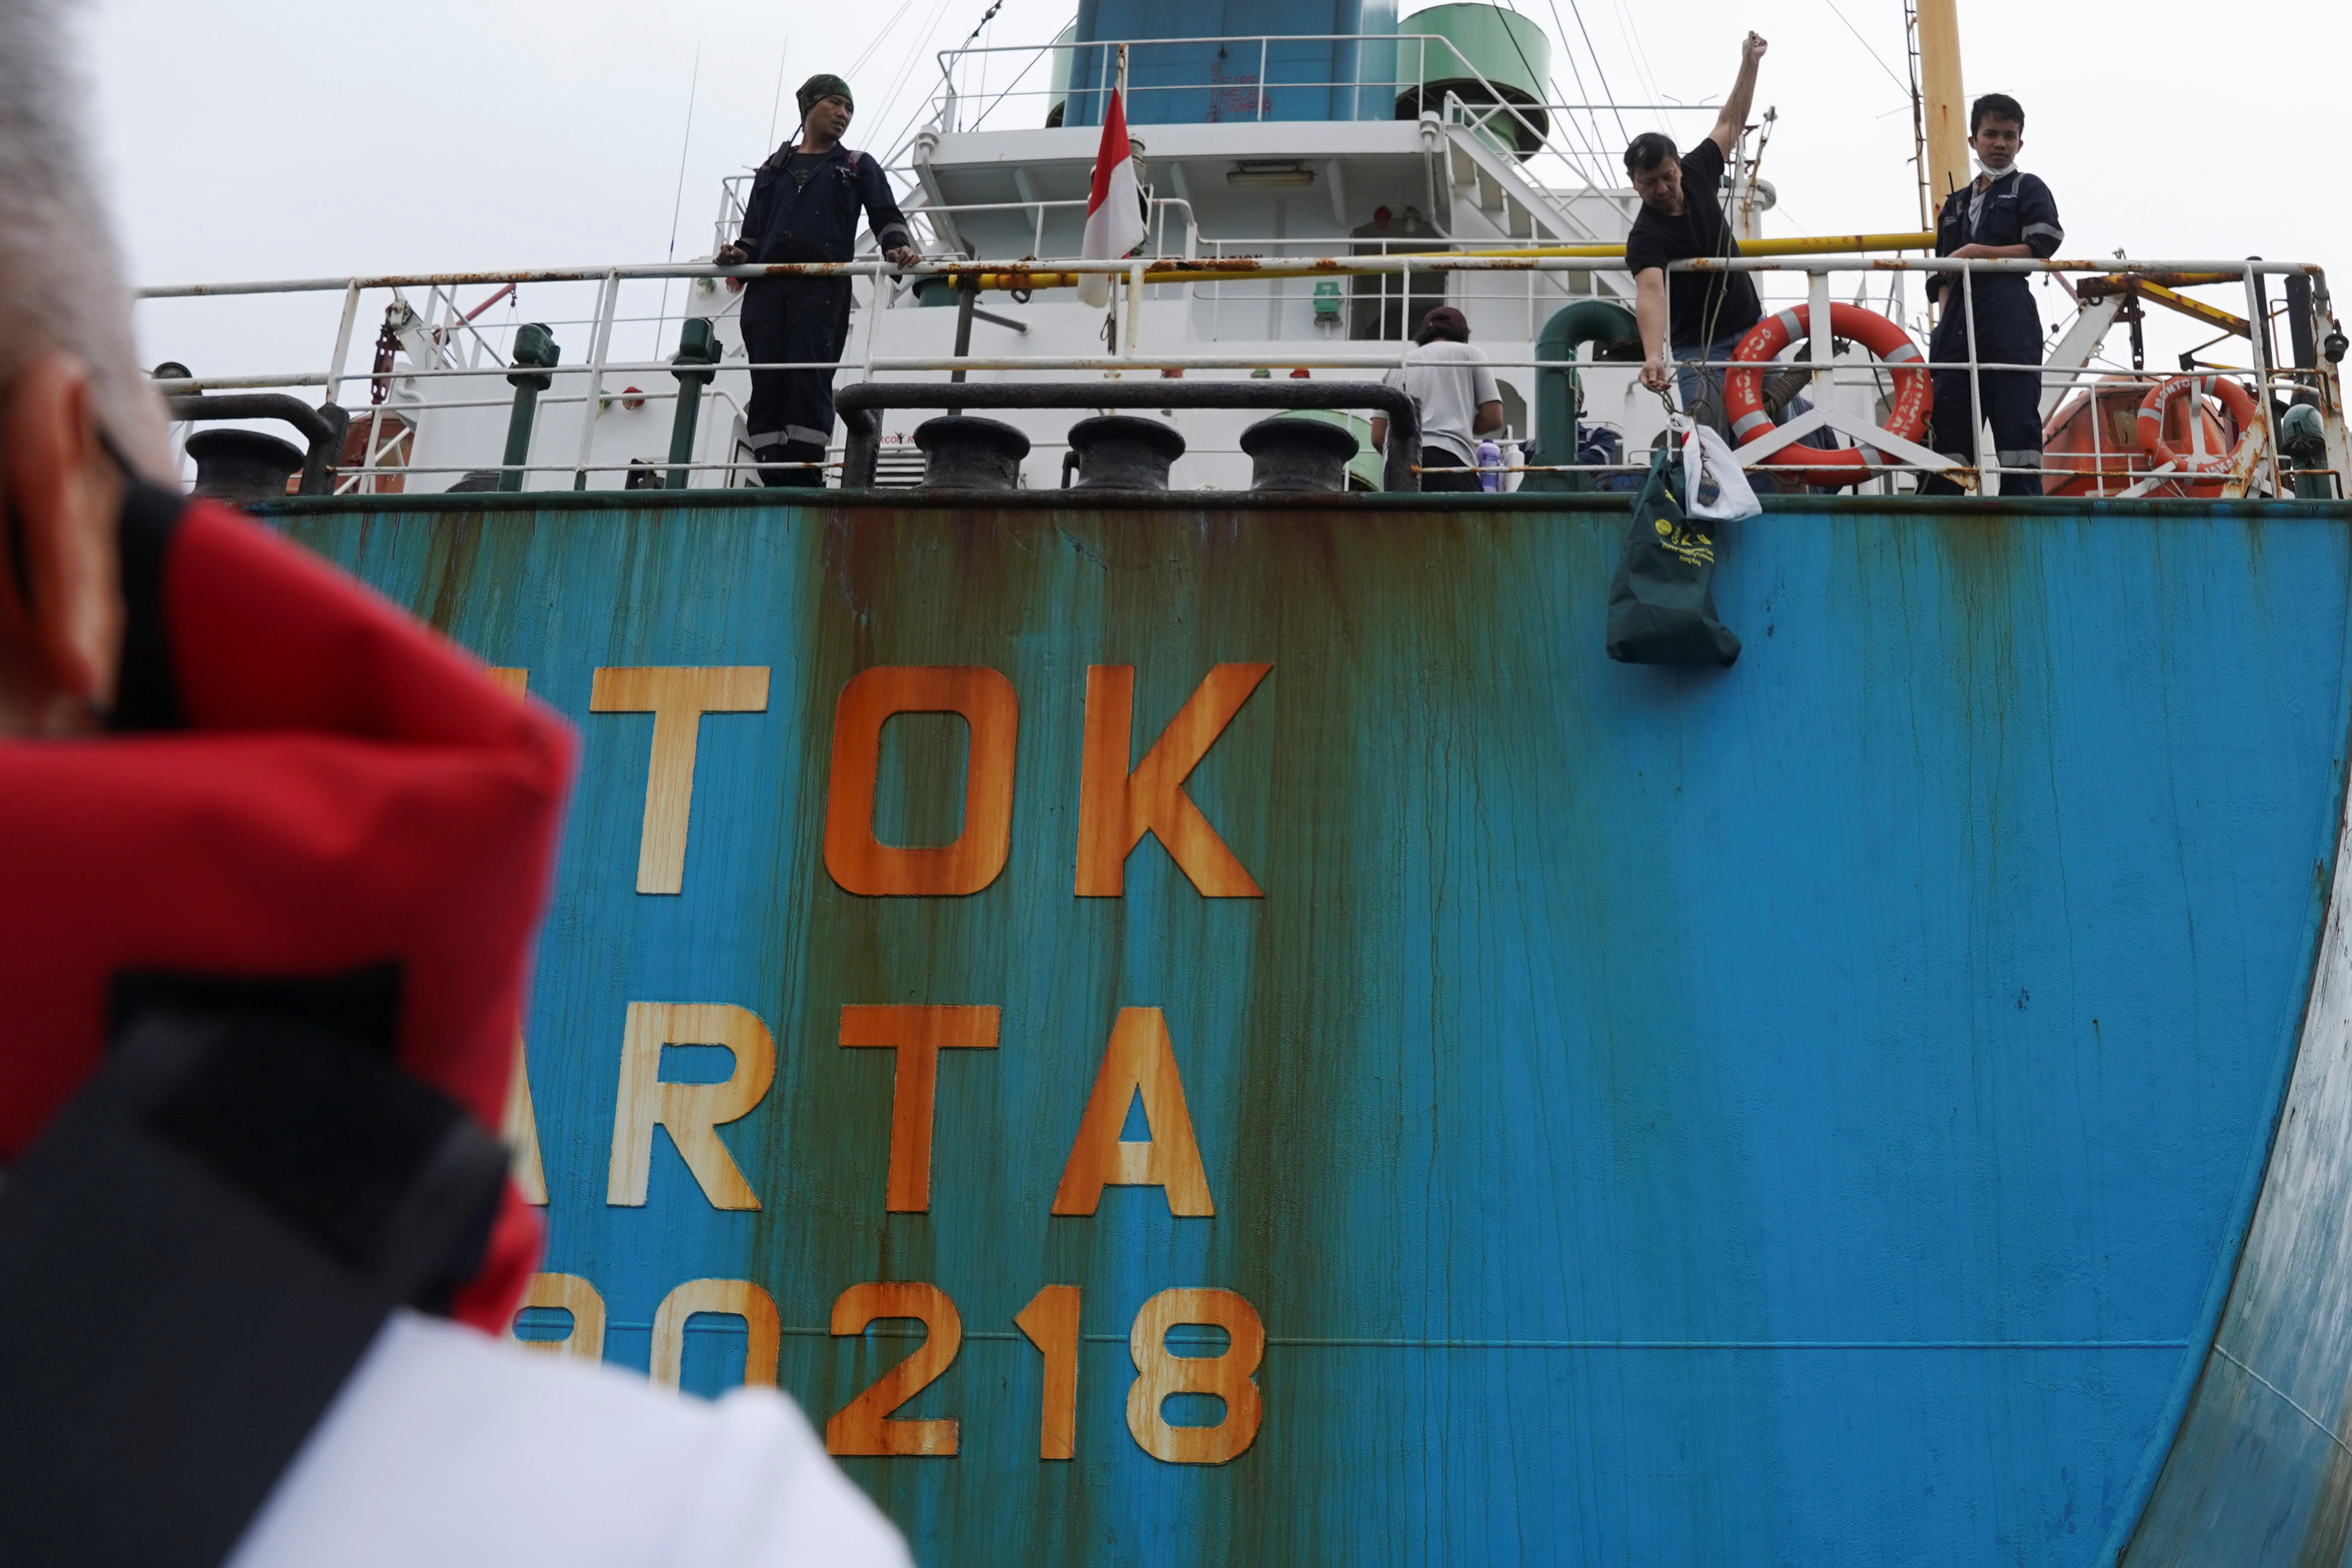 A sailor on an Indonesia-flagged cement carrier pulls a bag as the Mission of Seafarers delivers supplies to sailors stranded on visiting cargo vessels due to the coronavirus disease (COVID-19) pandemic, in Hong Kong, China March 22, 2021. Picture taken March 22, 2021.